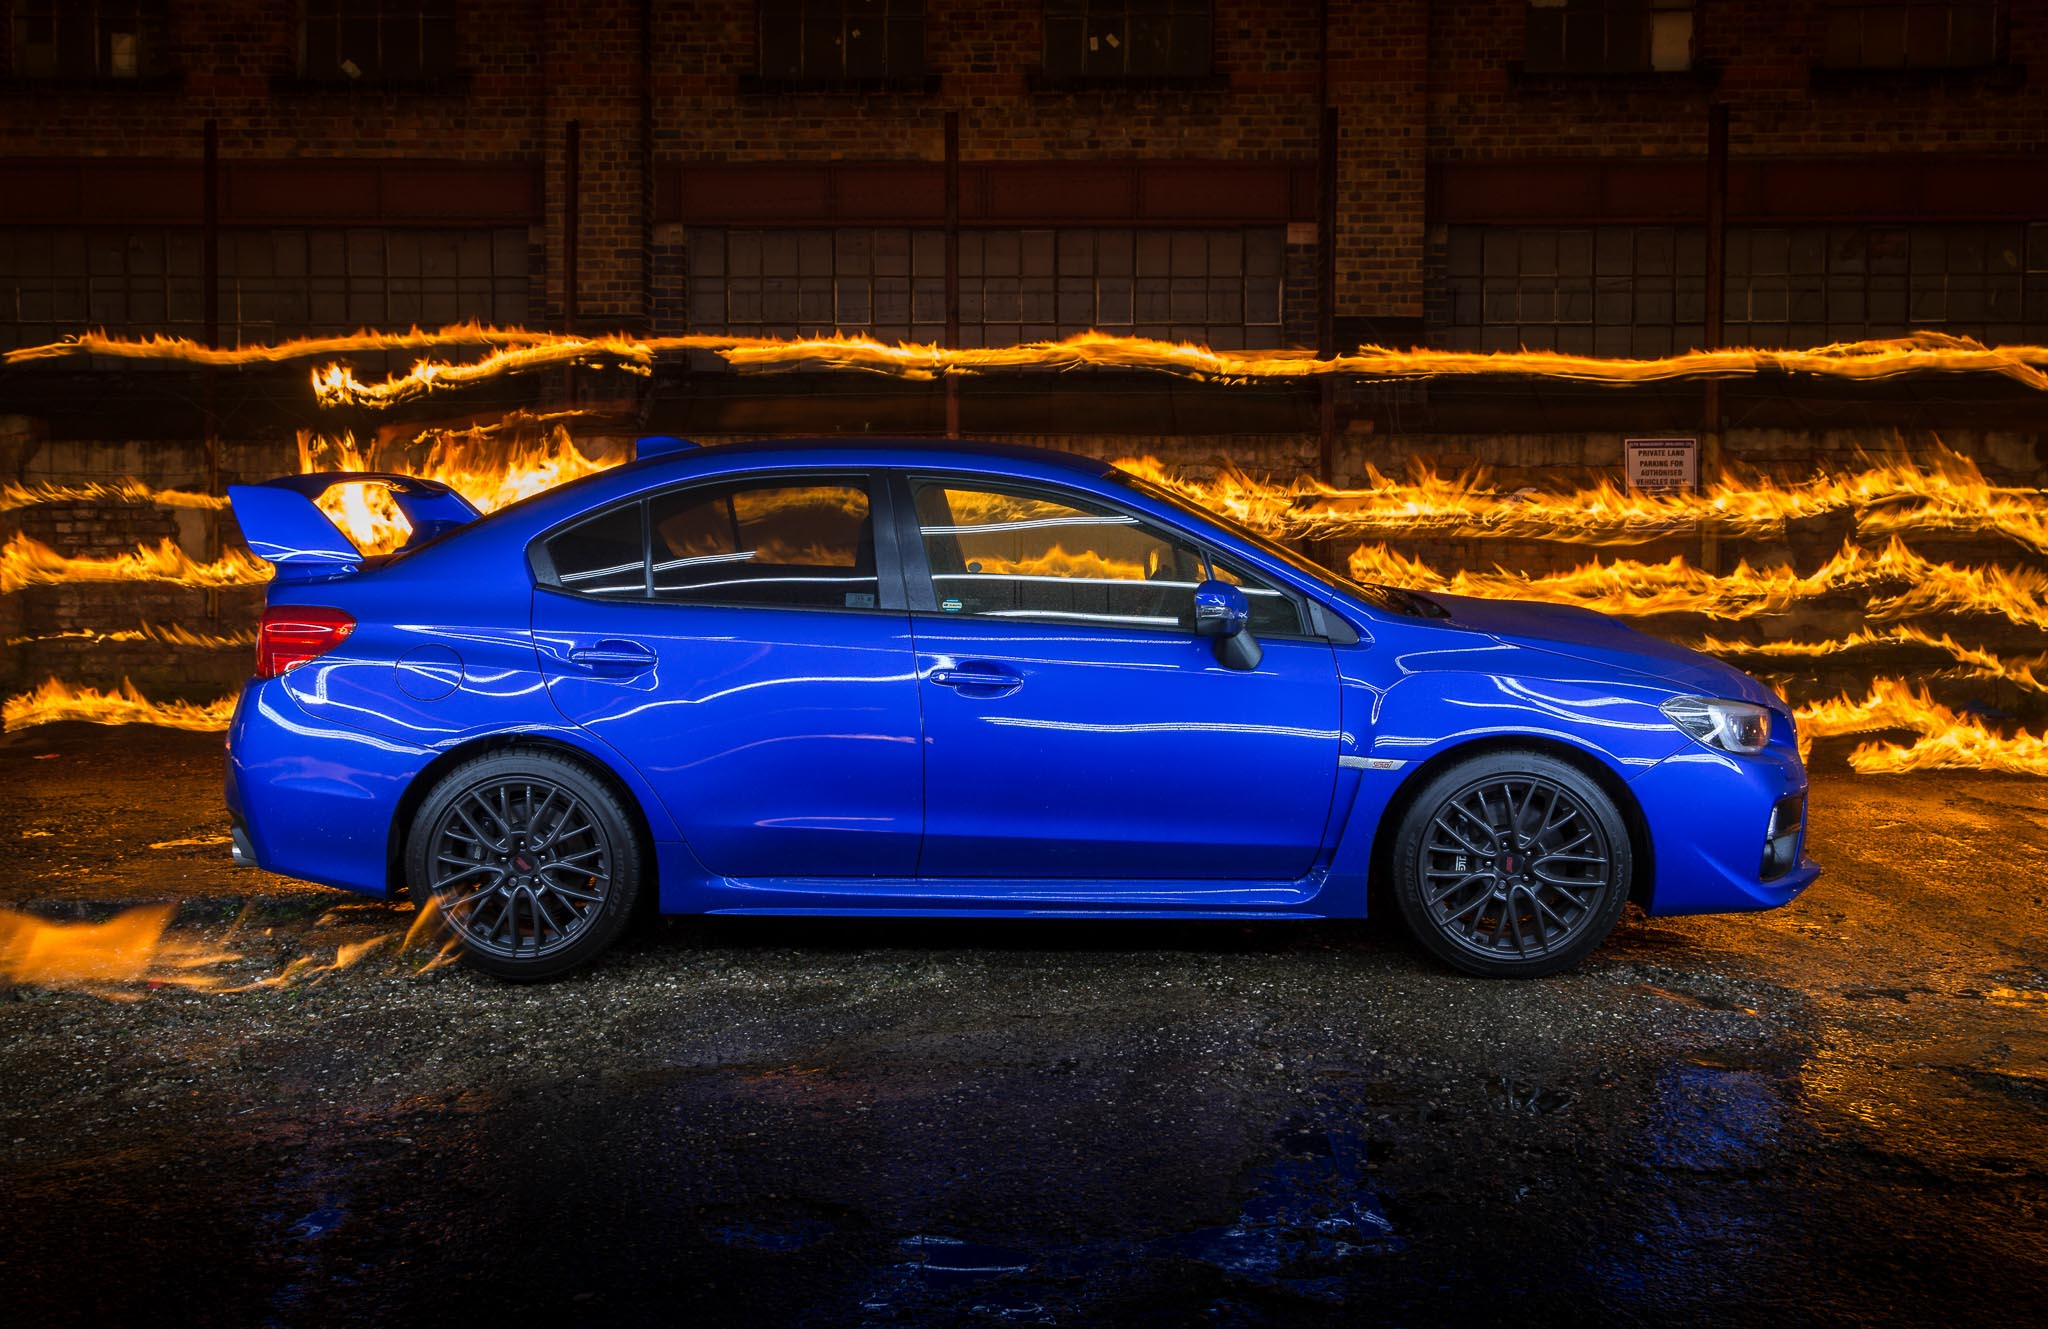 2017 Subaru Wrx Sti Review